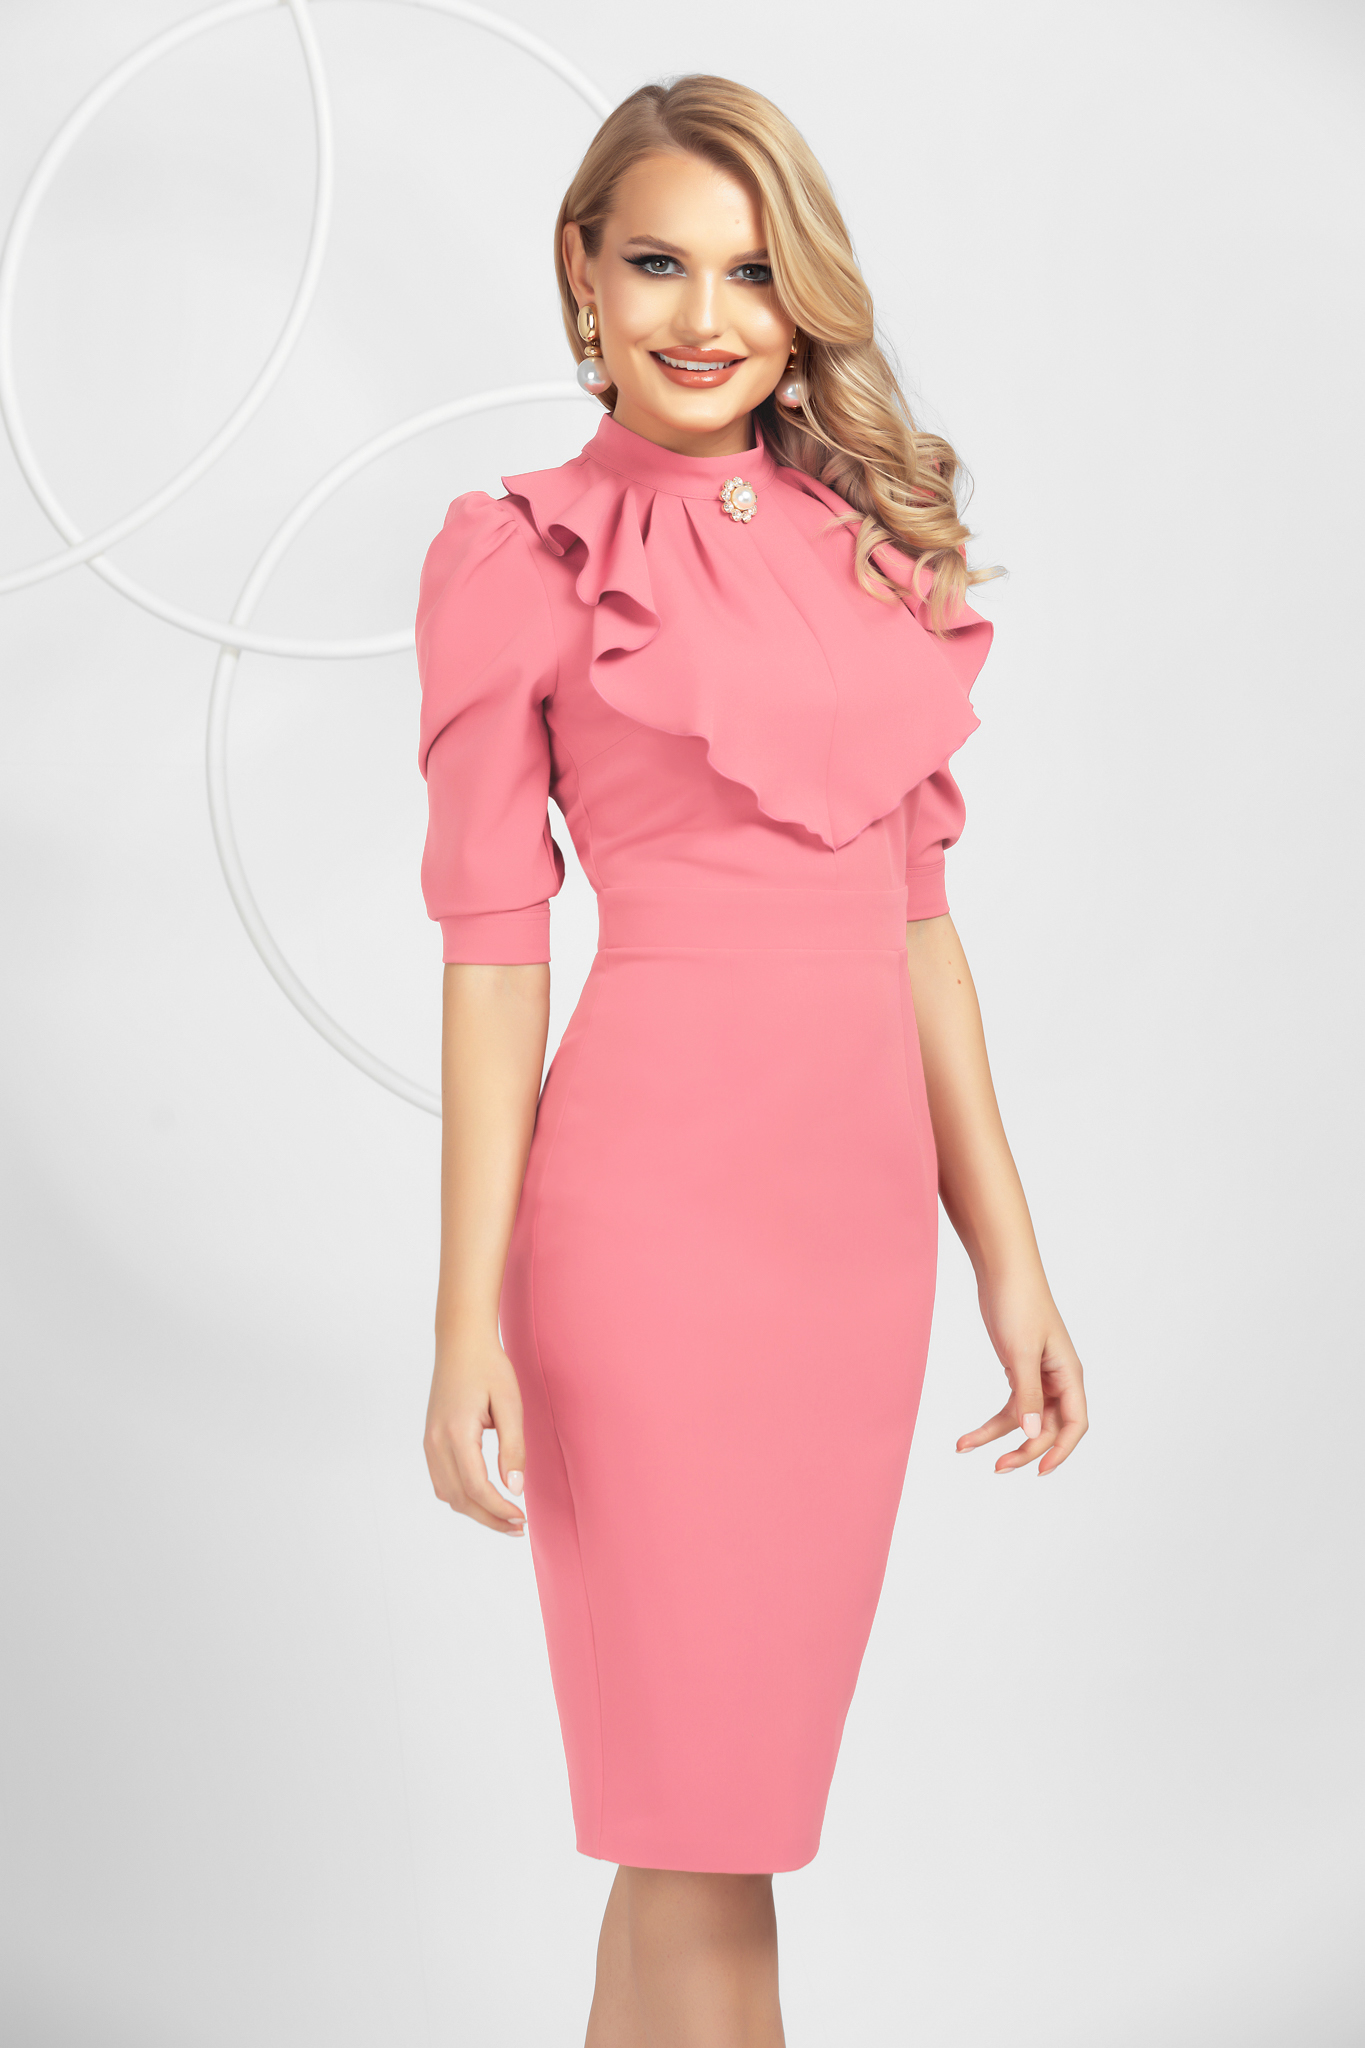 Lightpink slightly elastic fabric pencil dress with ruffle details accessorized with breastpin